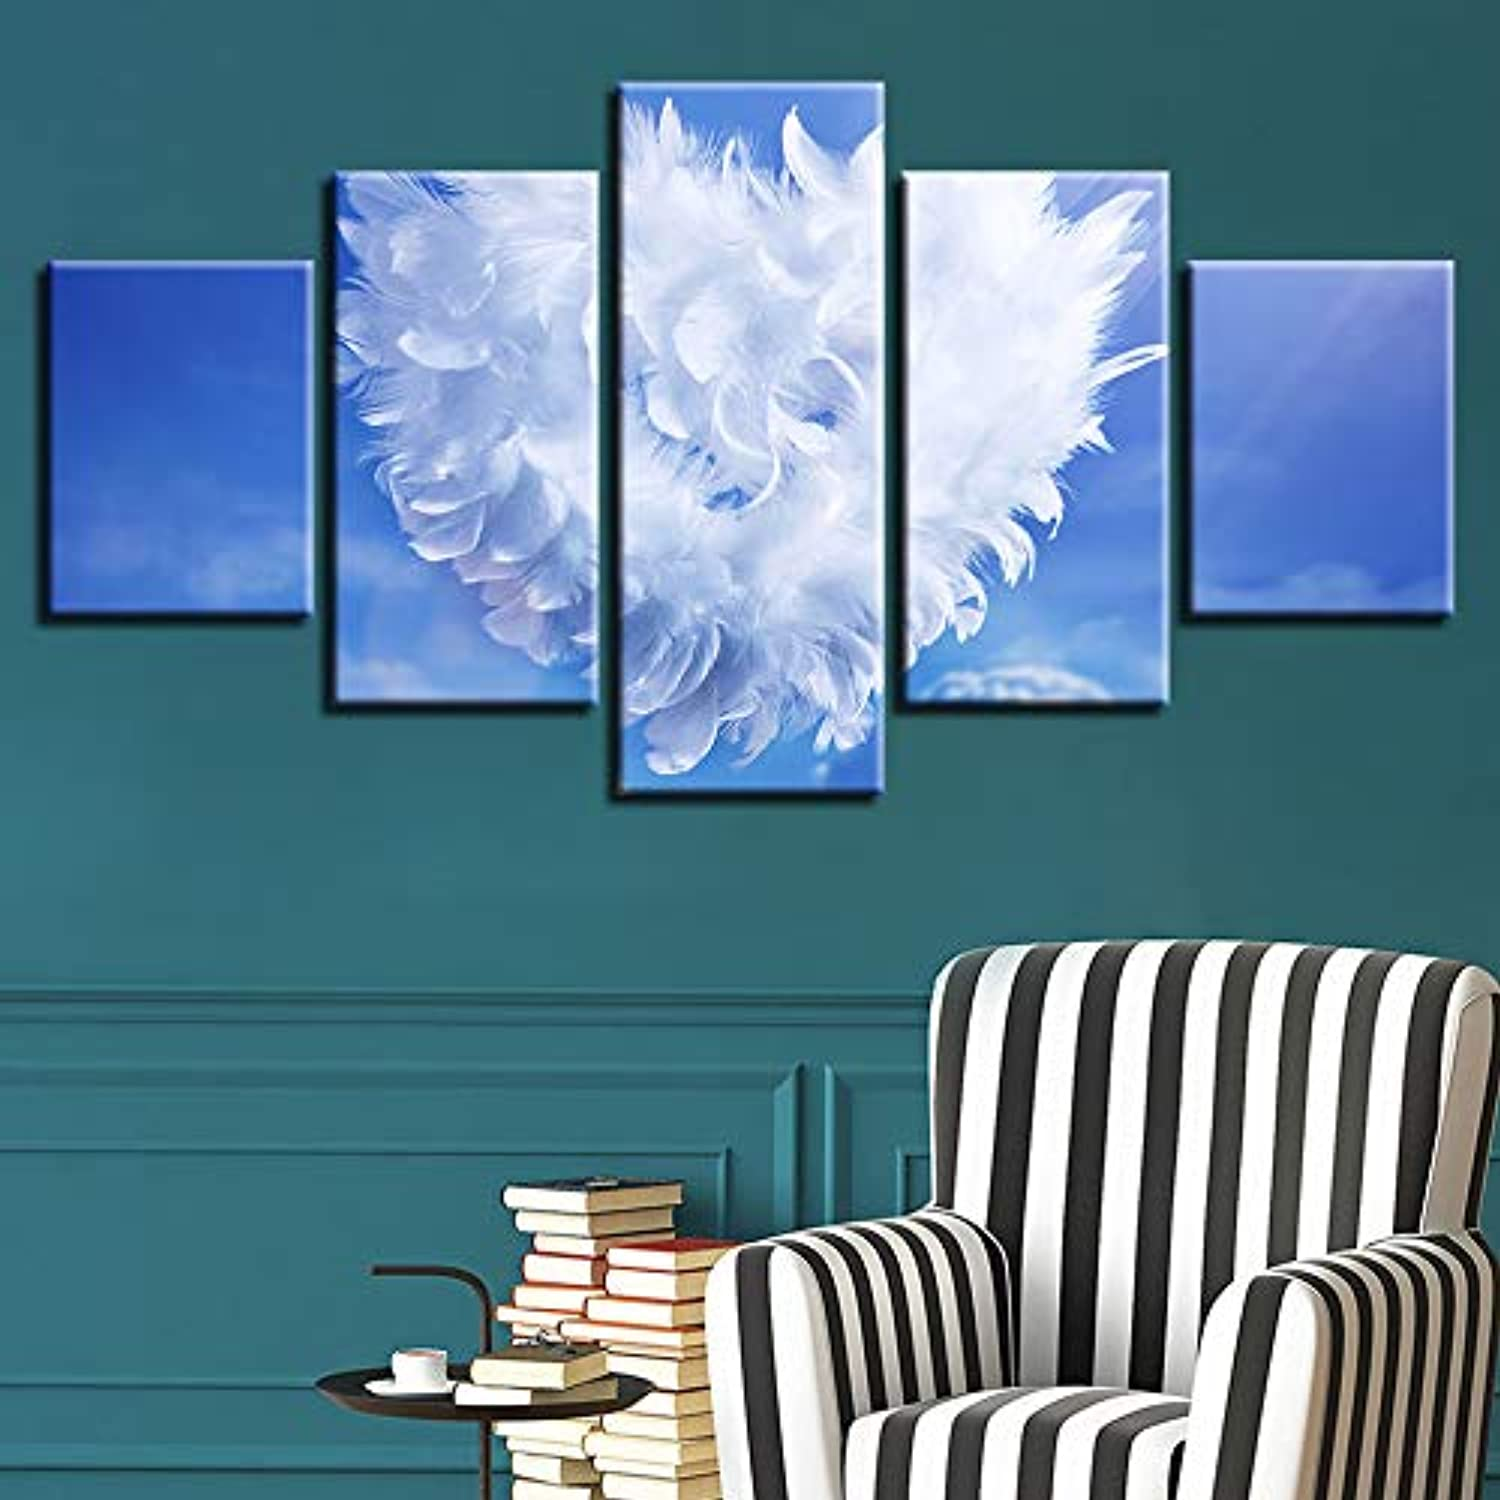 Home Decor Print Painting Modular Vintage Art Canvas 5 Panel bluee Sky White Clouds Wall Art Picture for Living Room Poster